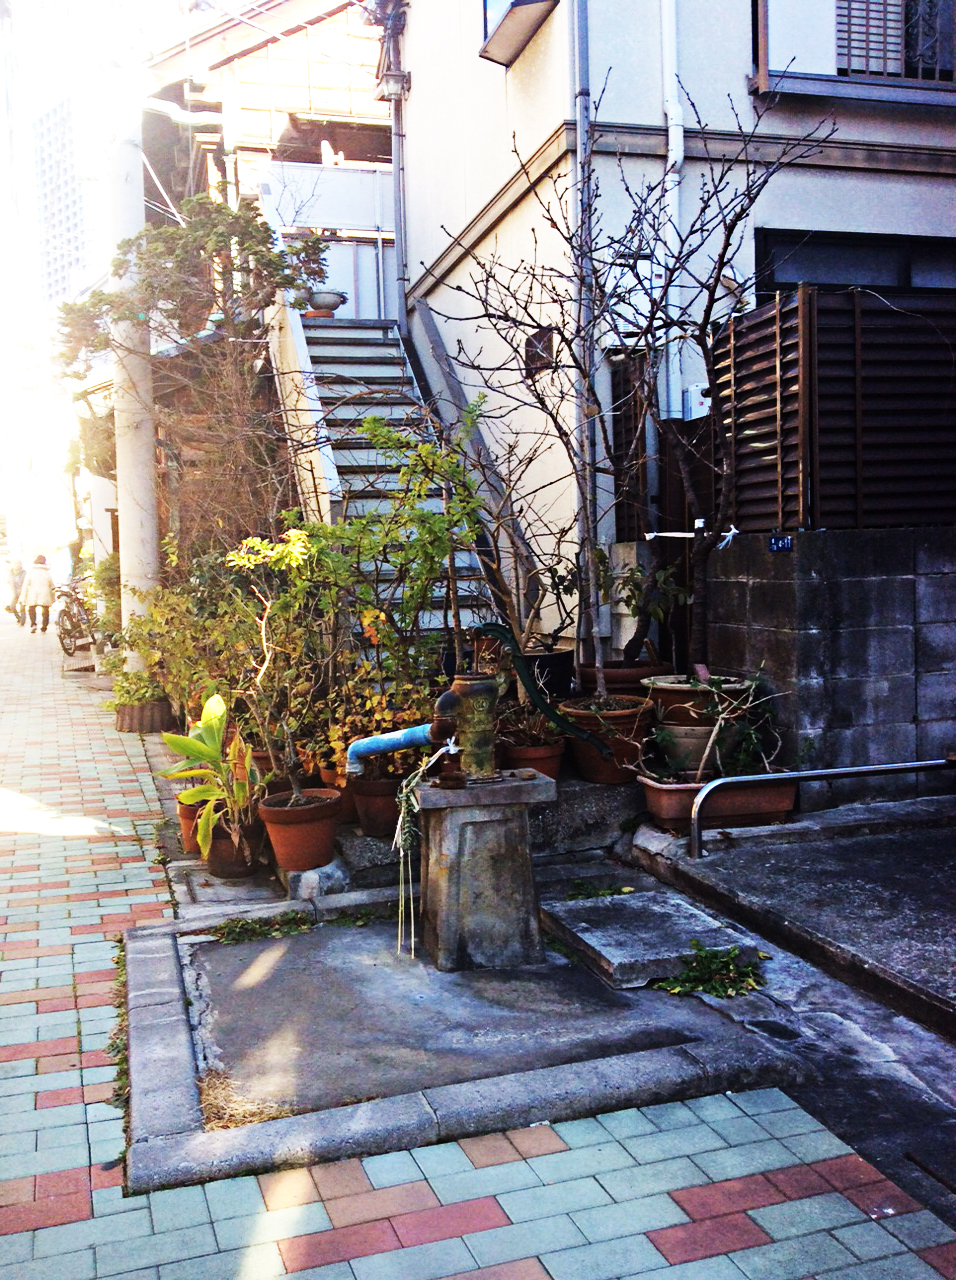 a pink and white pavement run the length of this little street, a blue water pump sits in the foreground of the image, and behind that a mass of terracotta pots with a variety of plants and shrubs. the small, rathe ramshackle, building on the right has outdoor steps to the next floor up,